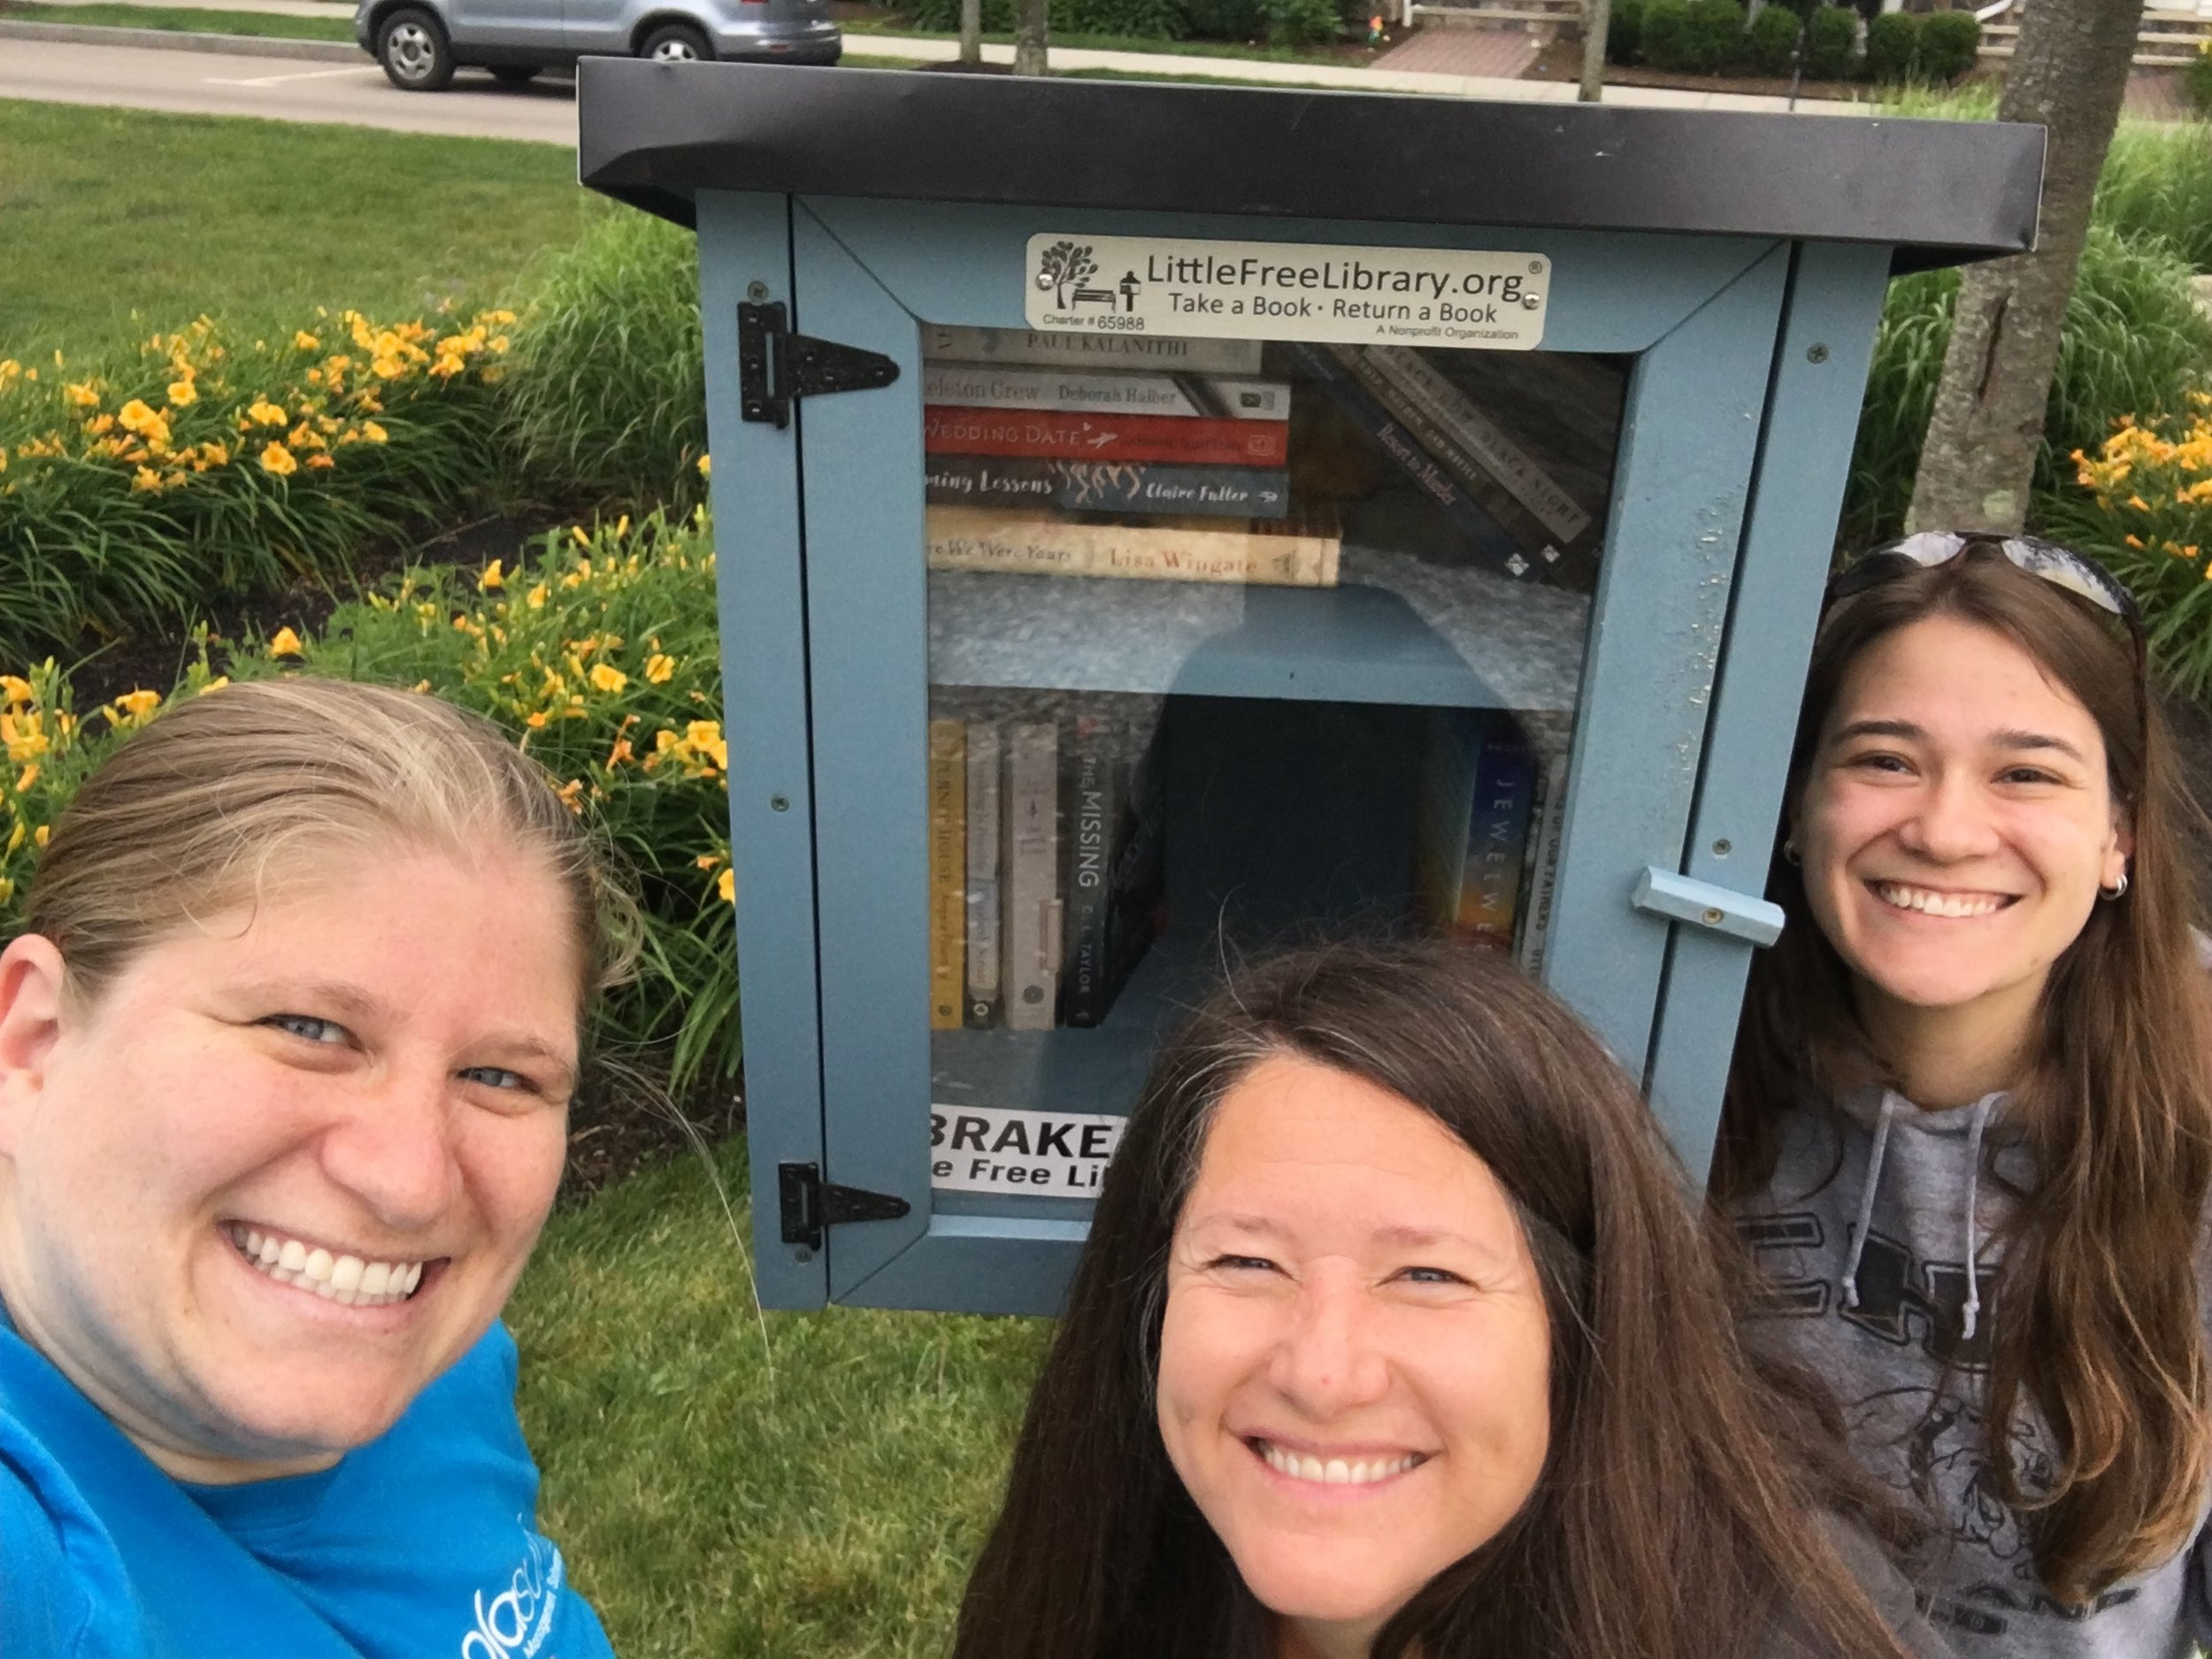 June 2018 - Neighbors Installed the little free library in the main park. Feel free to leave a book or take a book.This will be maintained by the SNA so please let us know if you see anything that needs to be fixed.